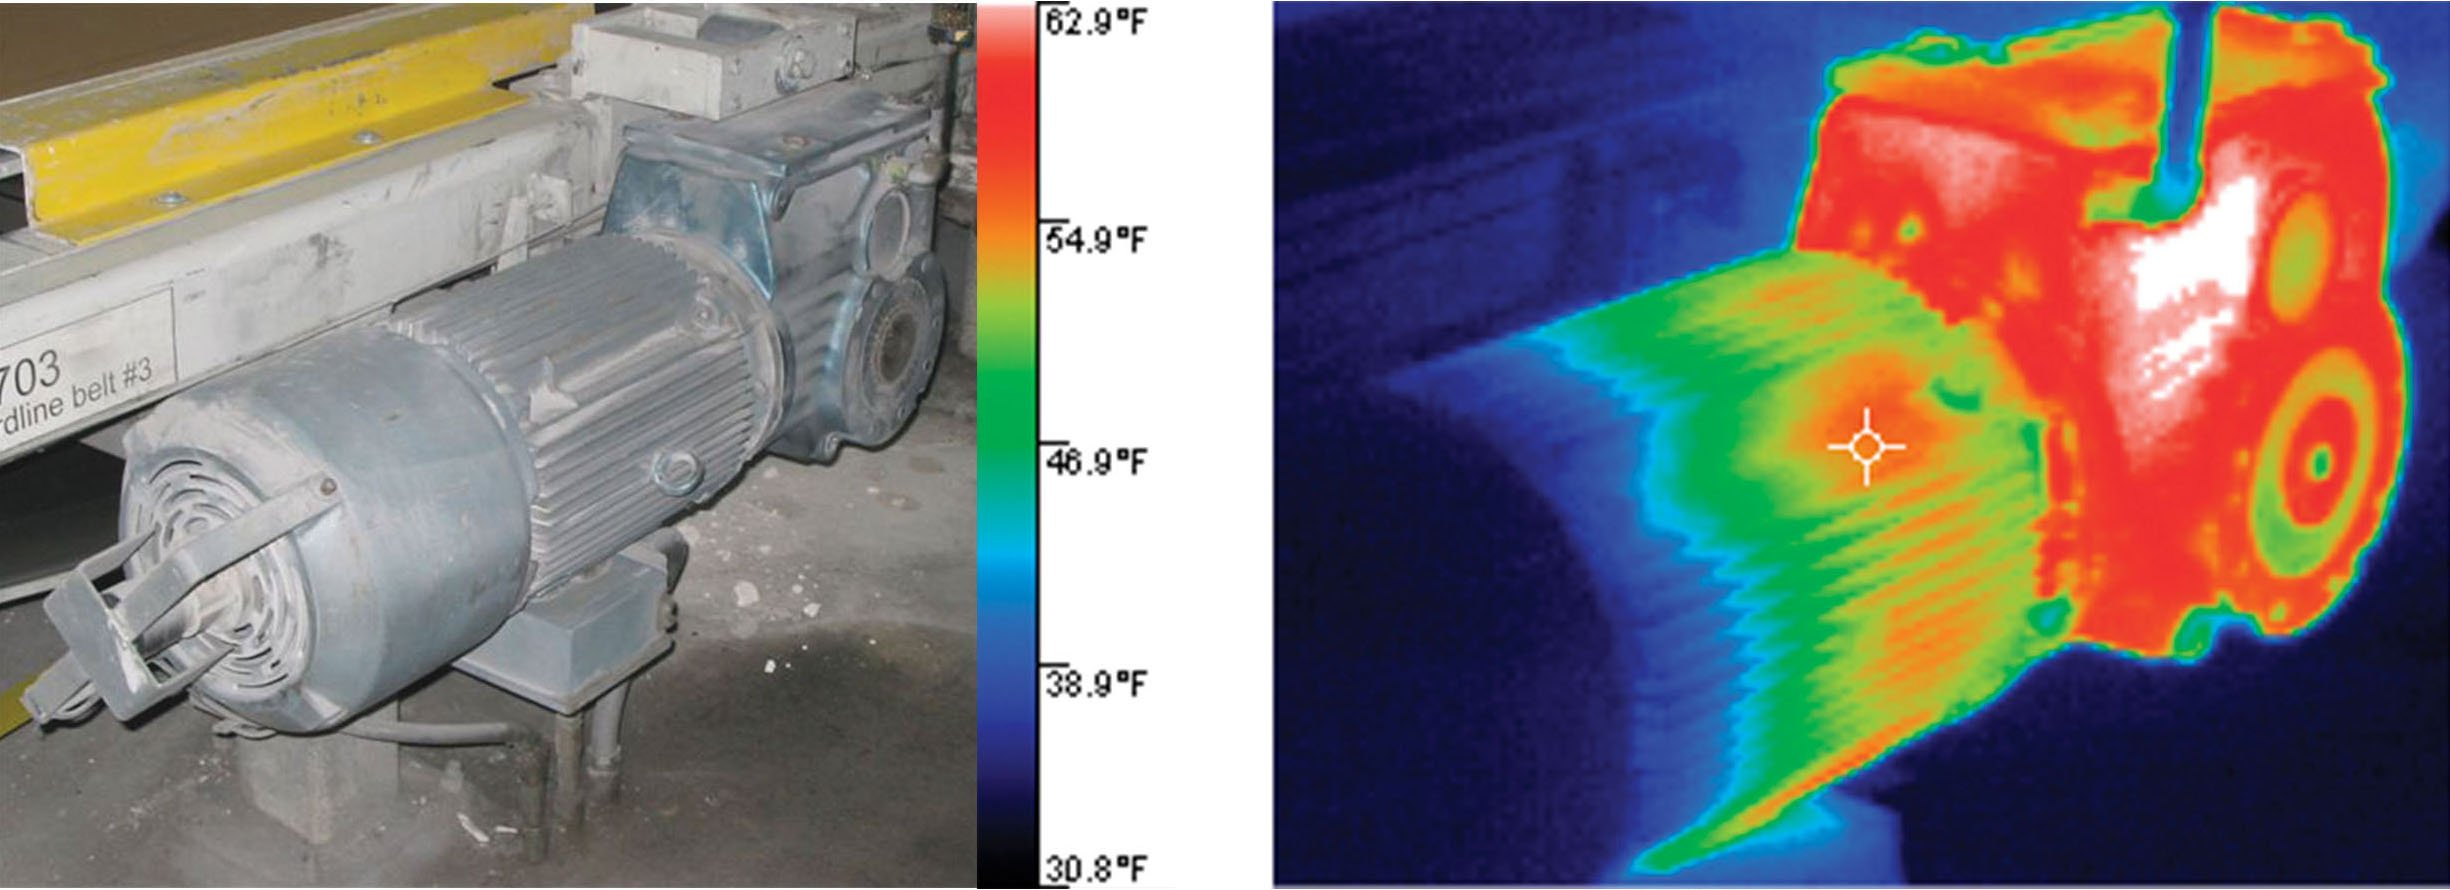 Troubleshooting a cool motor and hot gearbox with infrared cameras